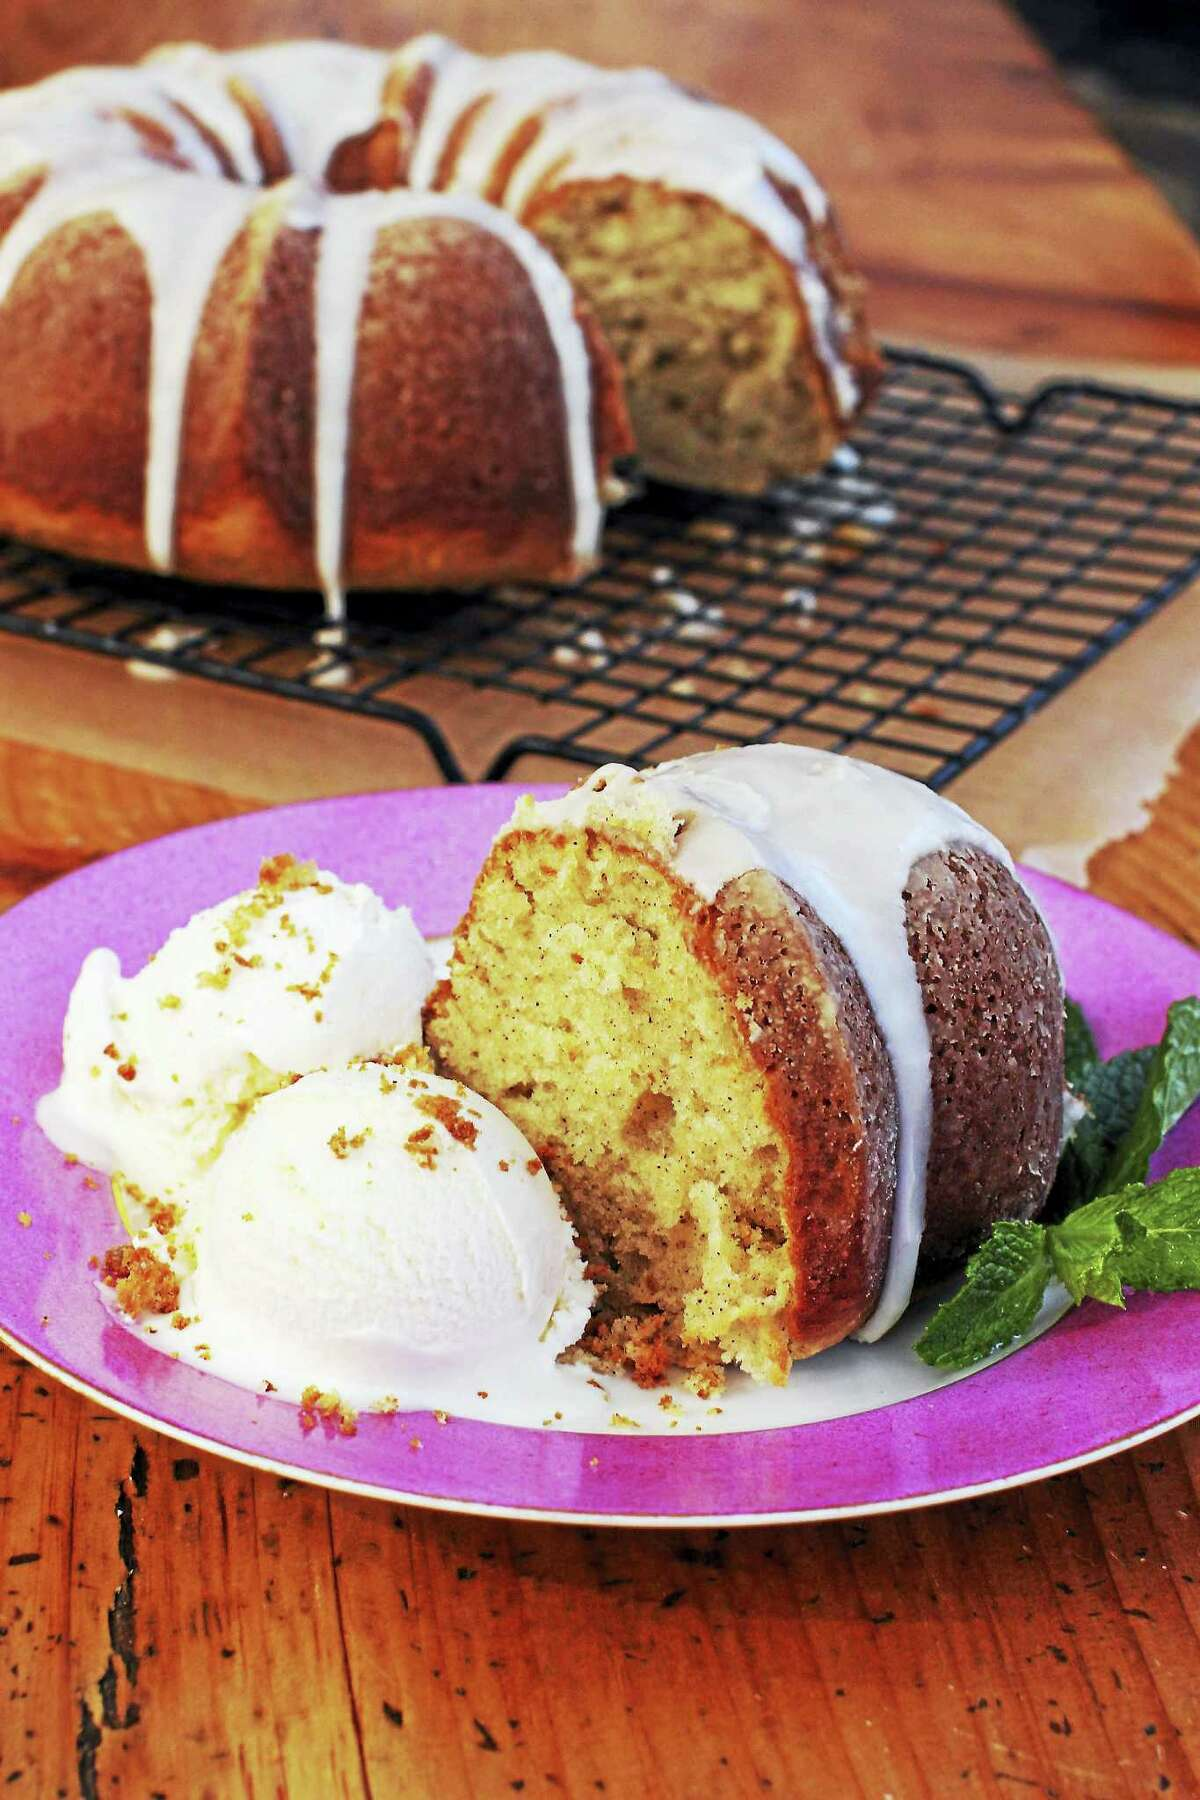 This Bundt-style sour cream cinnamon coffee cake is easy to make.